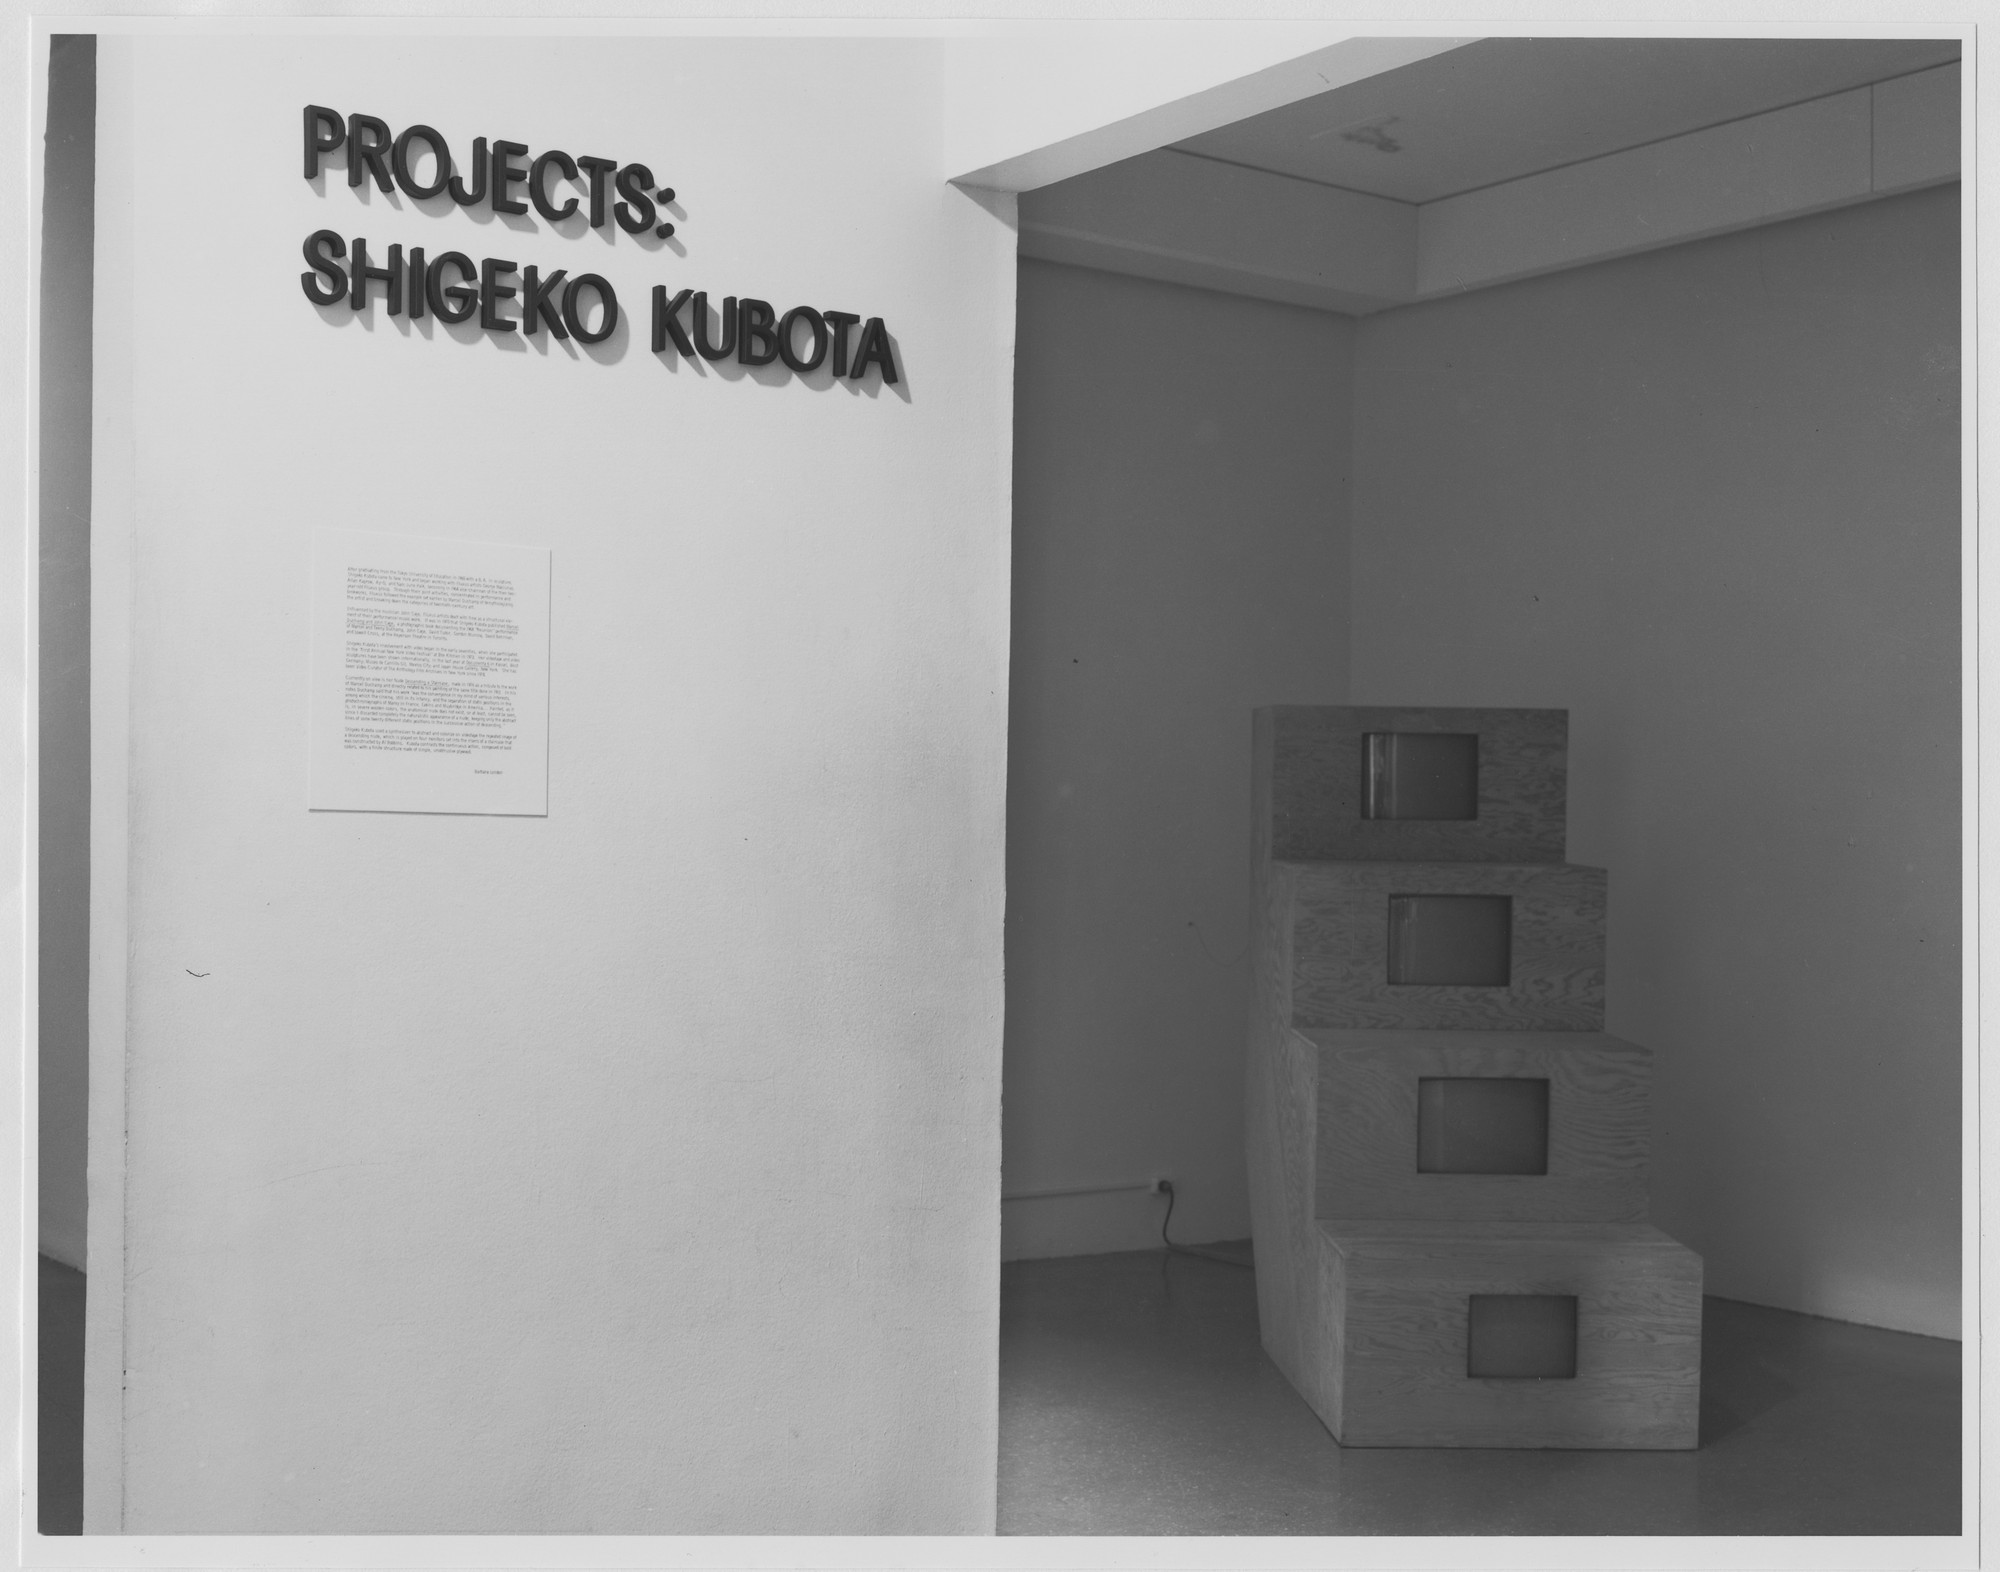 "Installation view of the exhibition, ""Projects: Shigeko Kubota"" March 16, 1978–May 2, 1978. Photographic Archive. The Museum of Modern Art Archives, New York. IN1203.1. Photograph by Katherine Keller."